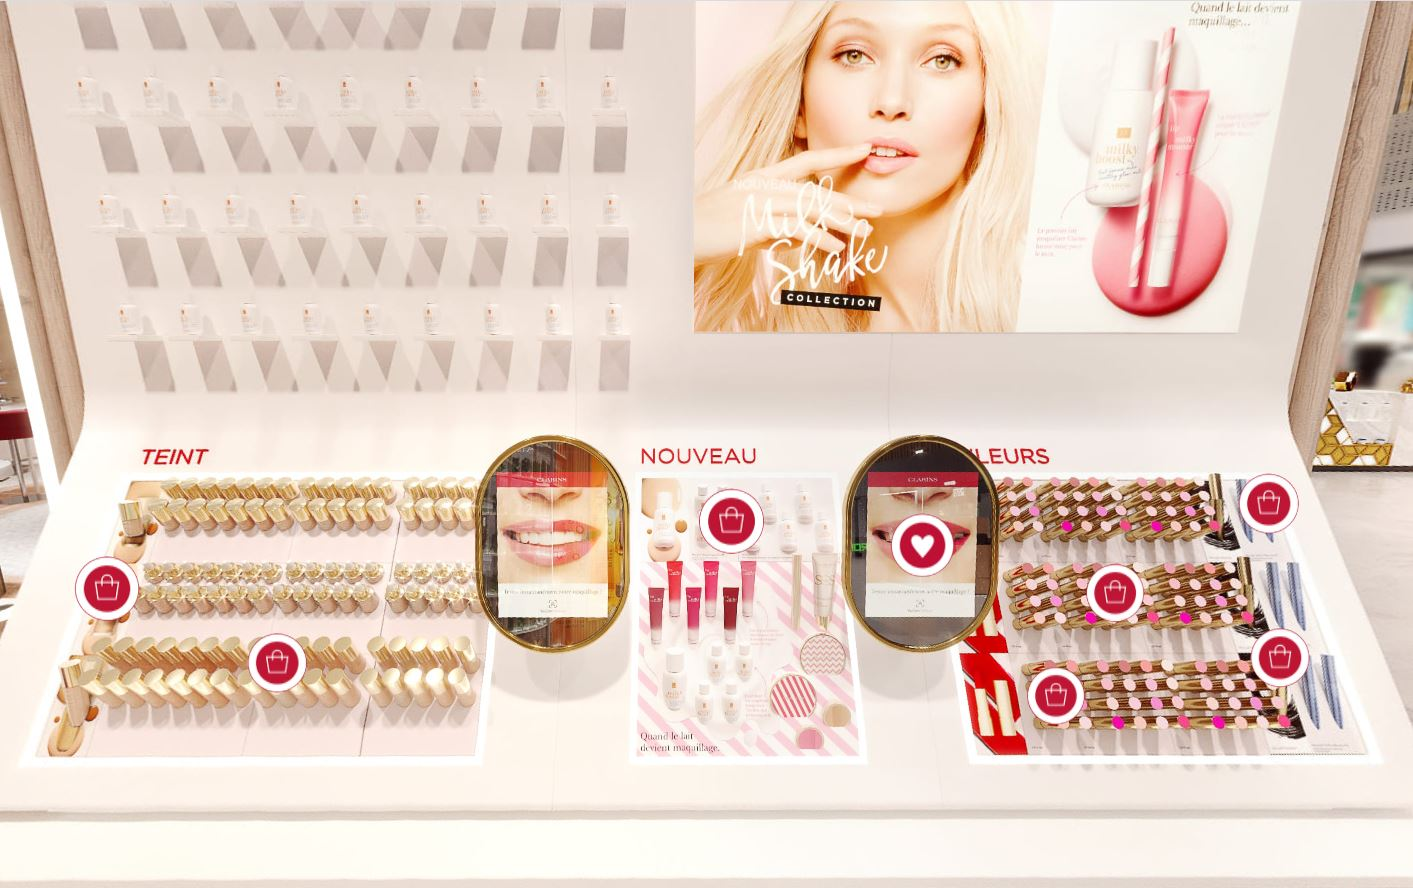 avis boutique virtuelle eshop Clarins